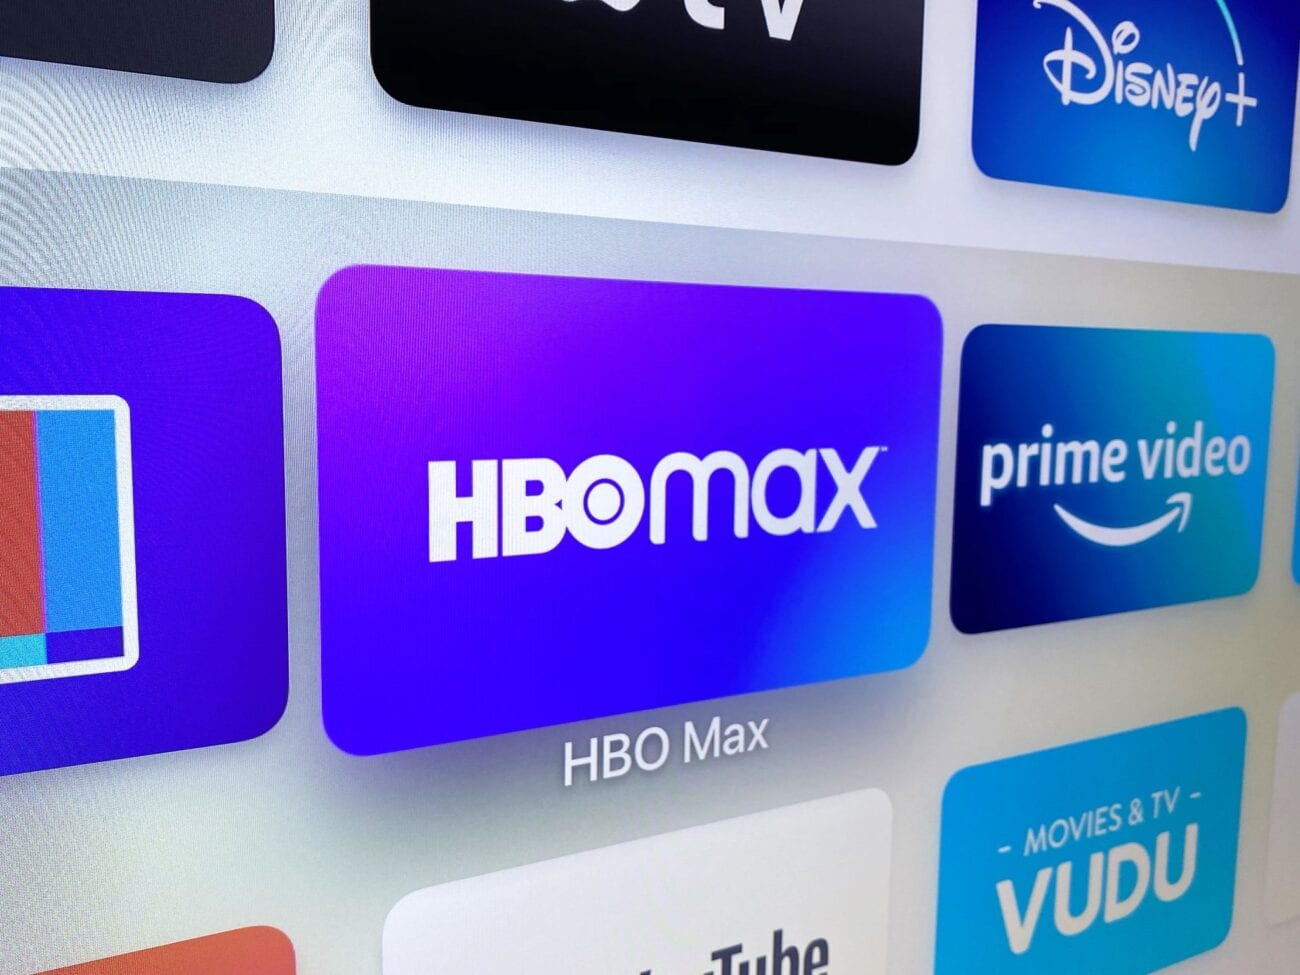 HBO Max was, after all, the only place to get access to exclusive movies. What's the price? Here are all the ways you can get your own free account.